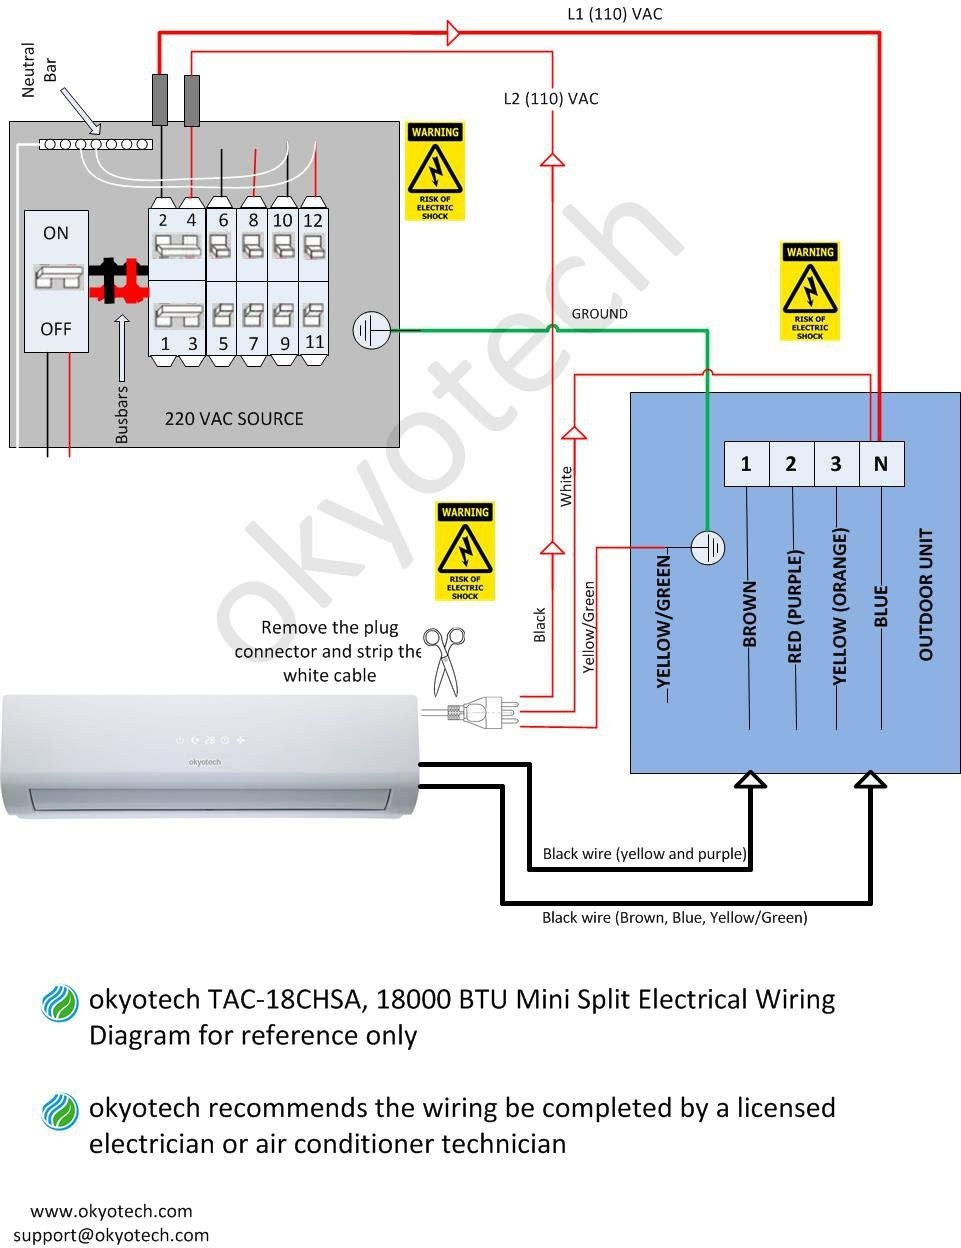 fujitsu mini split heat pump wiring diagram | free wiring ... diagram split ac